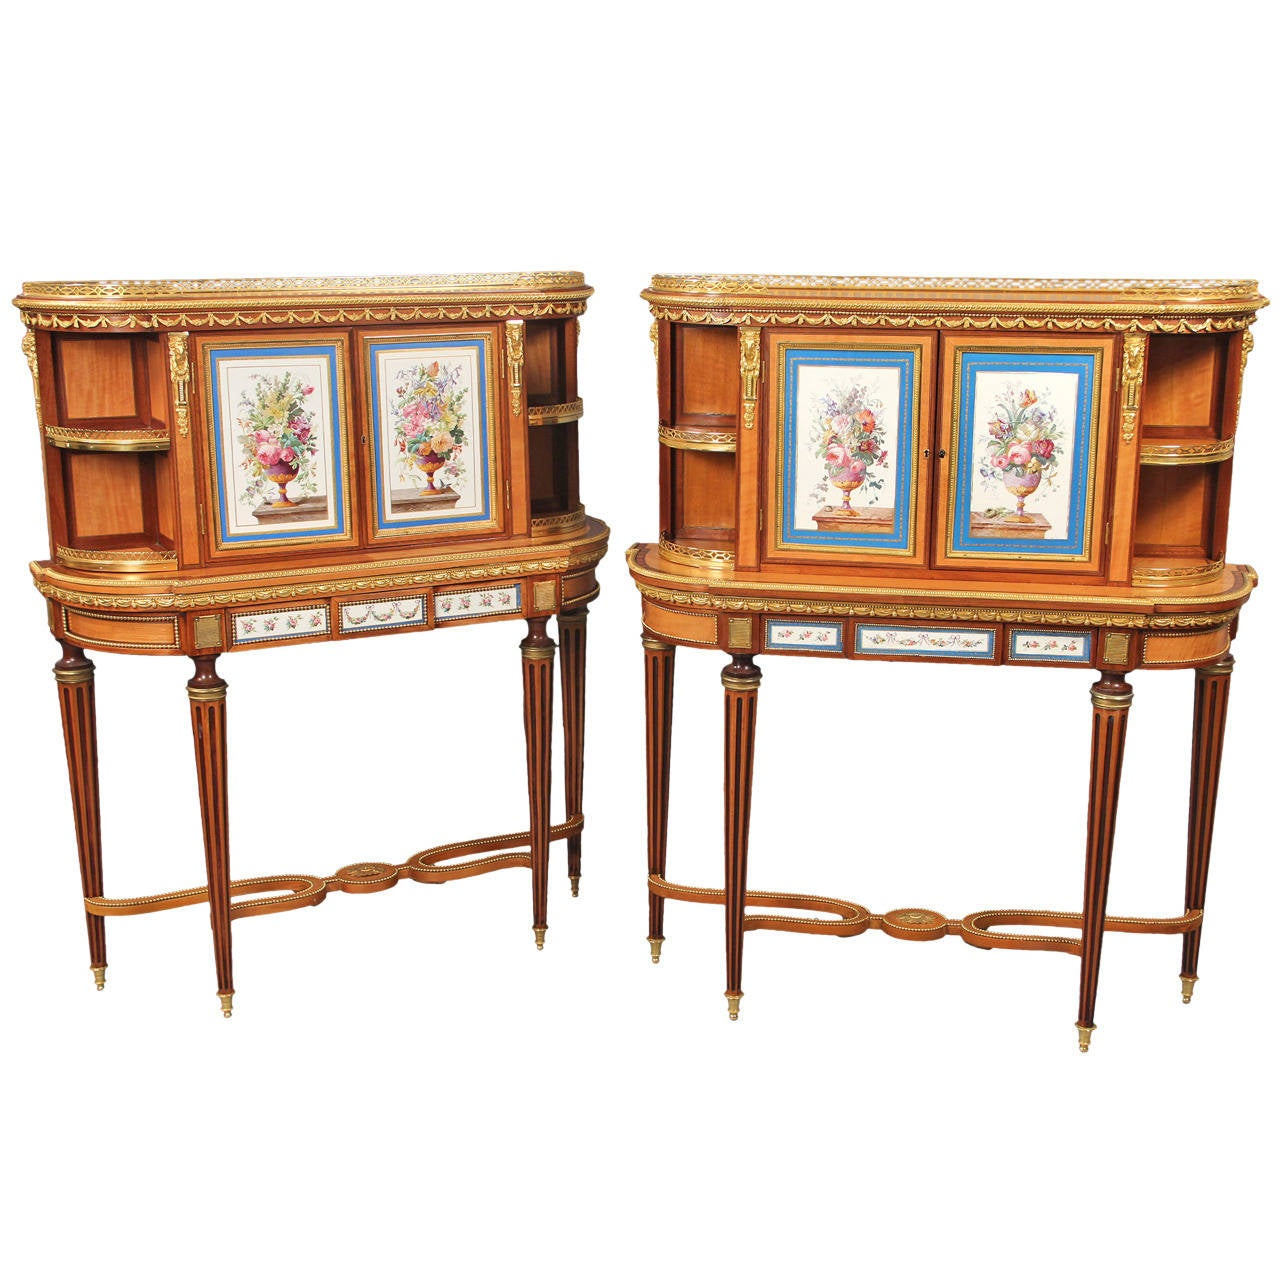 Fine Pair of Late 19th Century Bronze and Sevres Porcelain Cabinets by Gillows For Sale